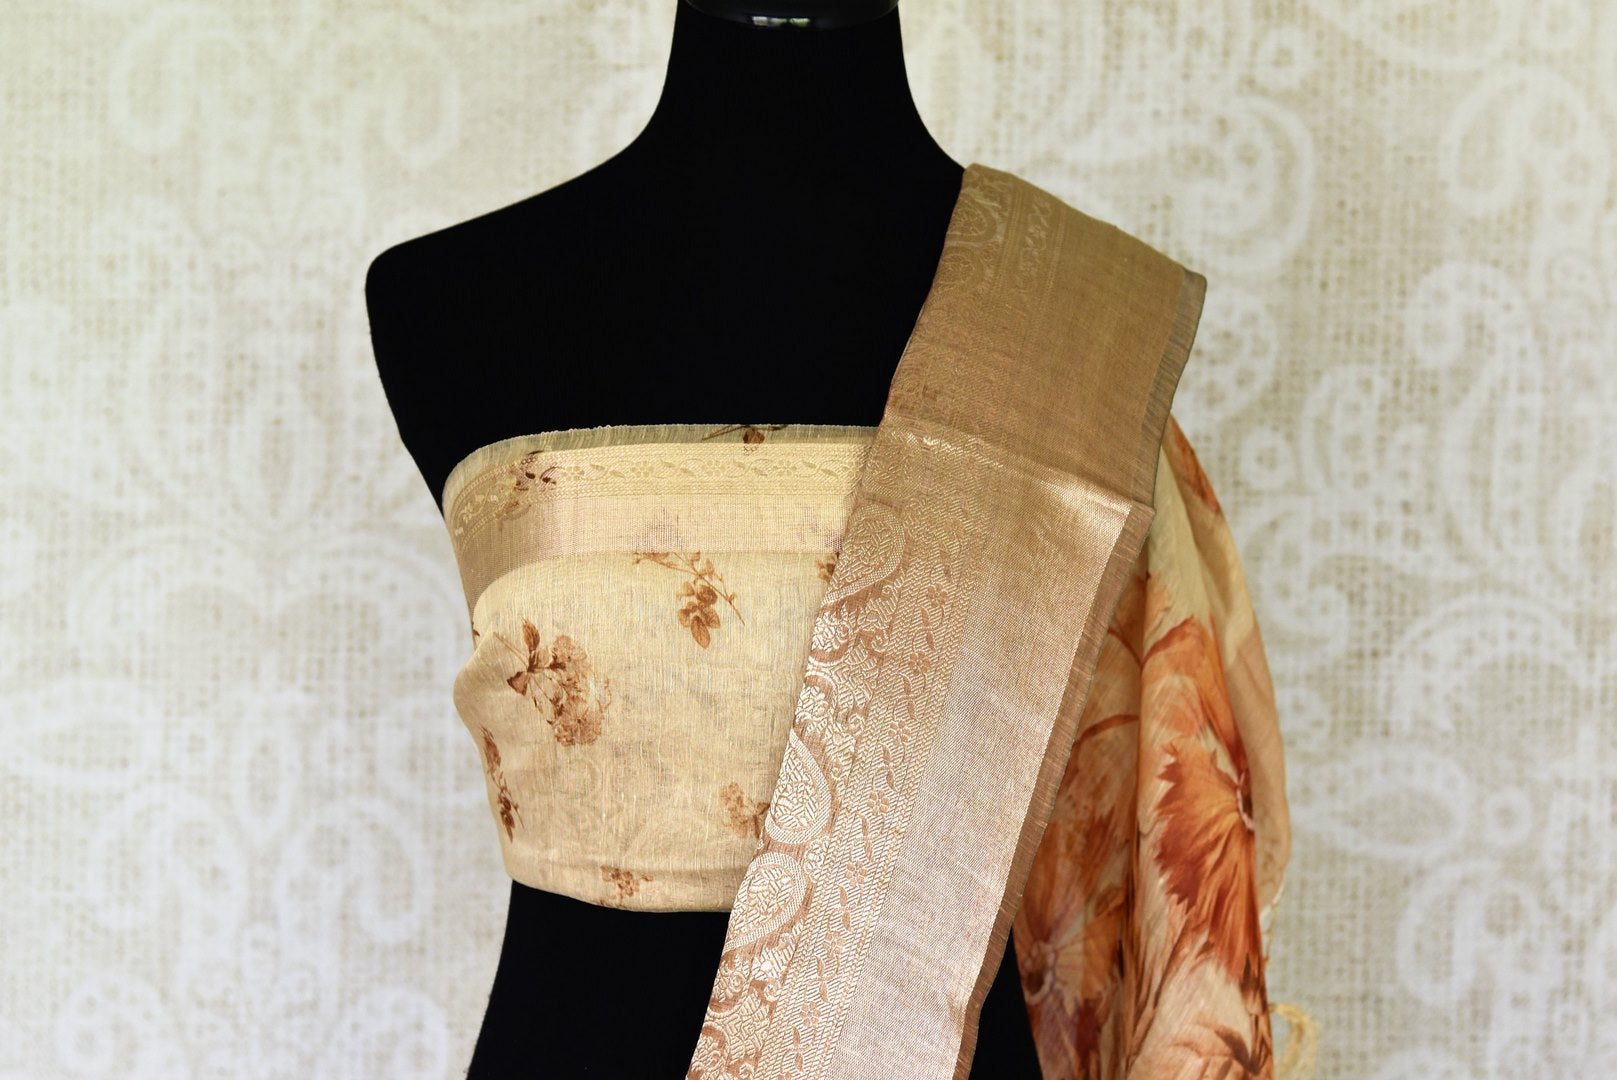 Buy cream floral print linen Benarasi saree online in USA with golden border. Update your saree wardrobe with stunning Indian handwoven sarees from Pure Elegance Indian fashion store in USA. Shop now.-blouse pallu